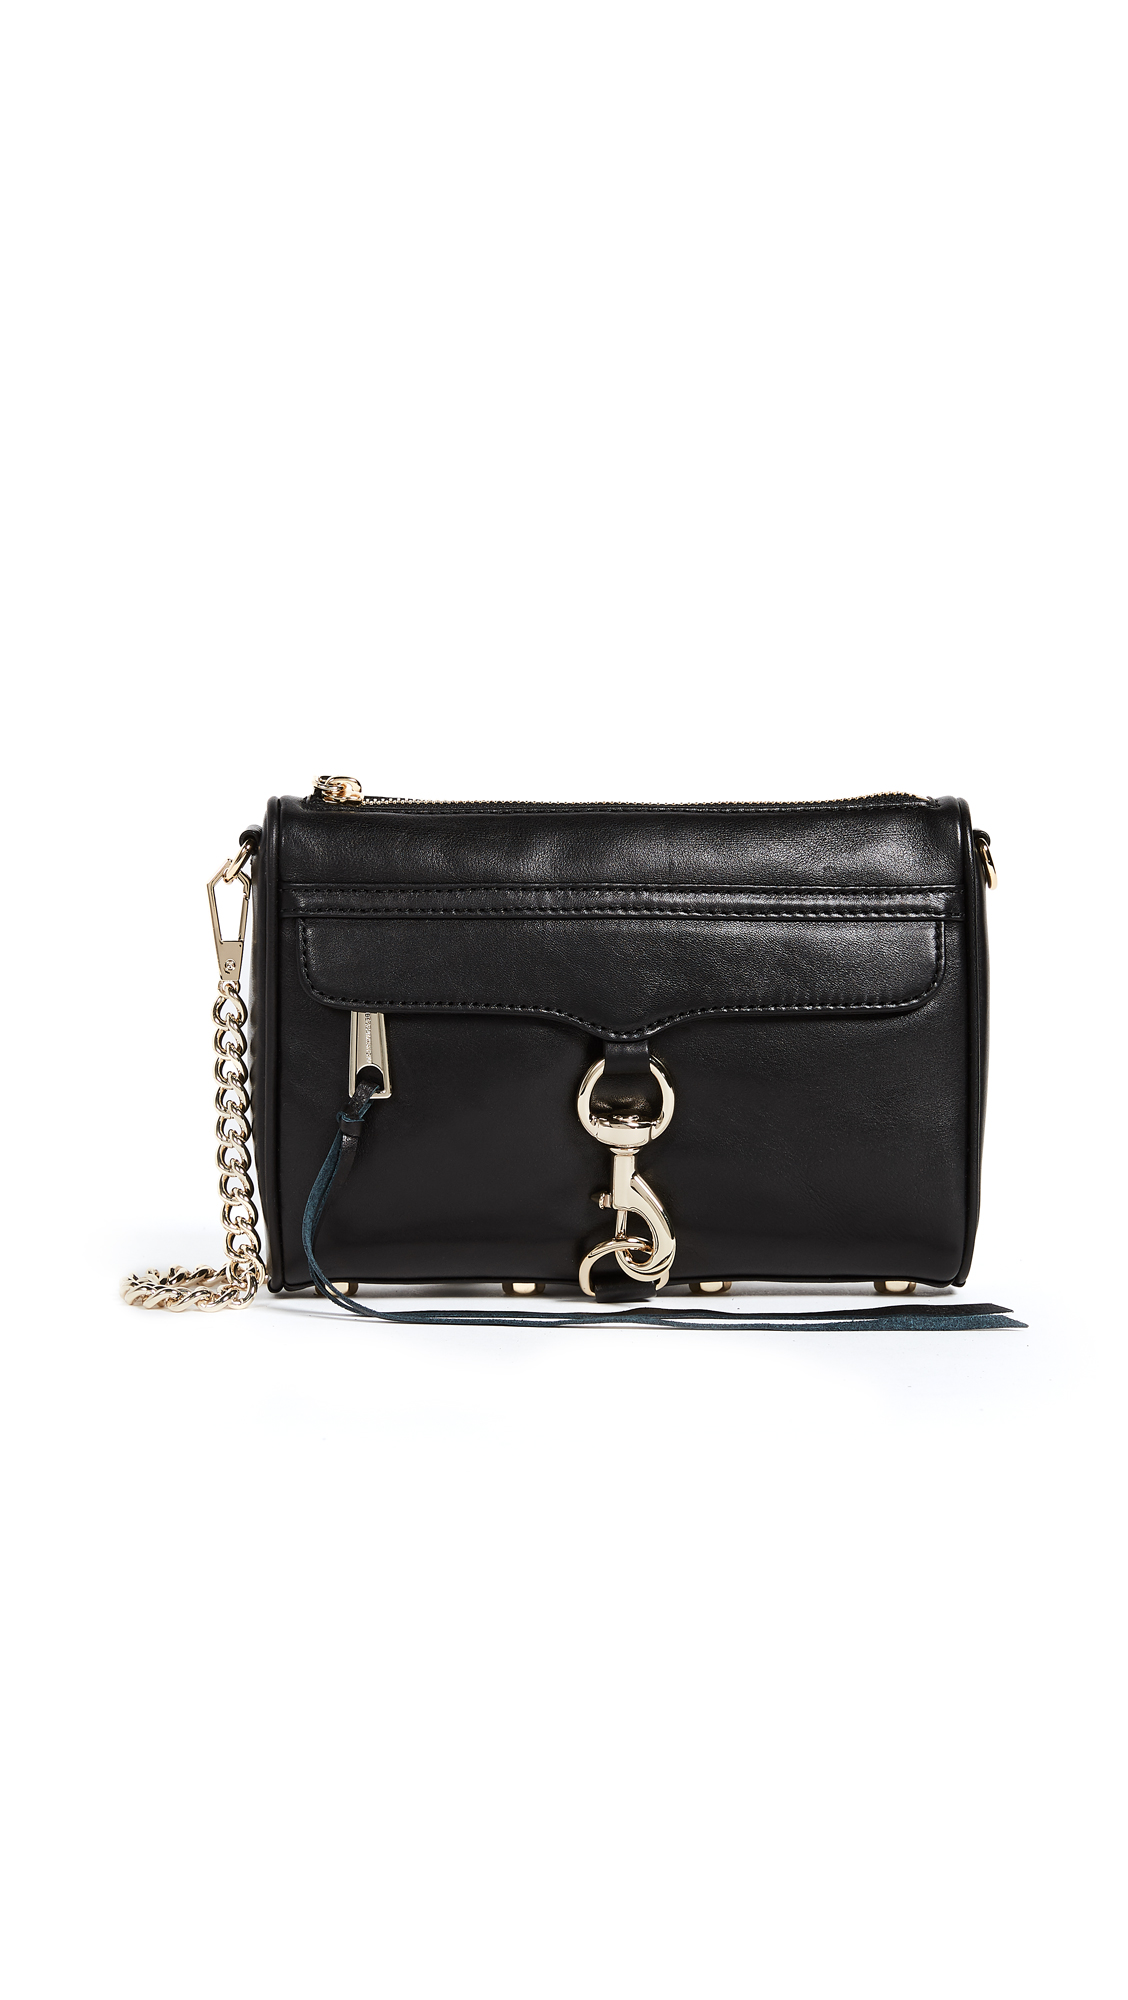 Rebecca Minkoff Mini MAC Bag - Black